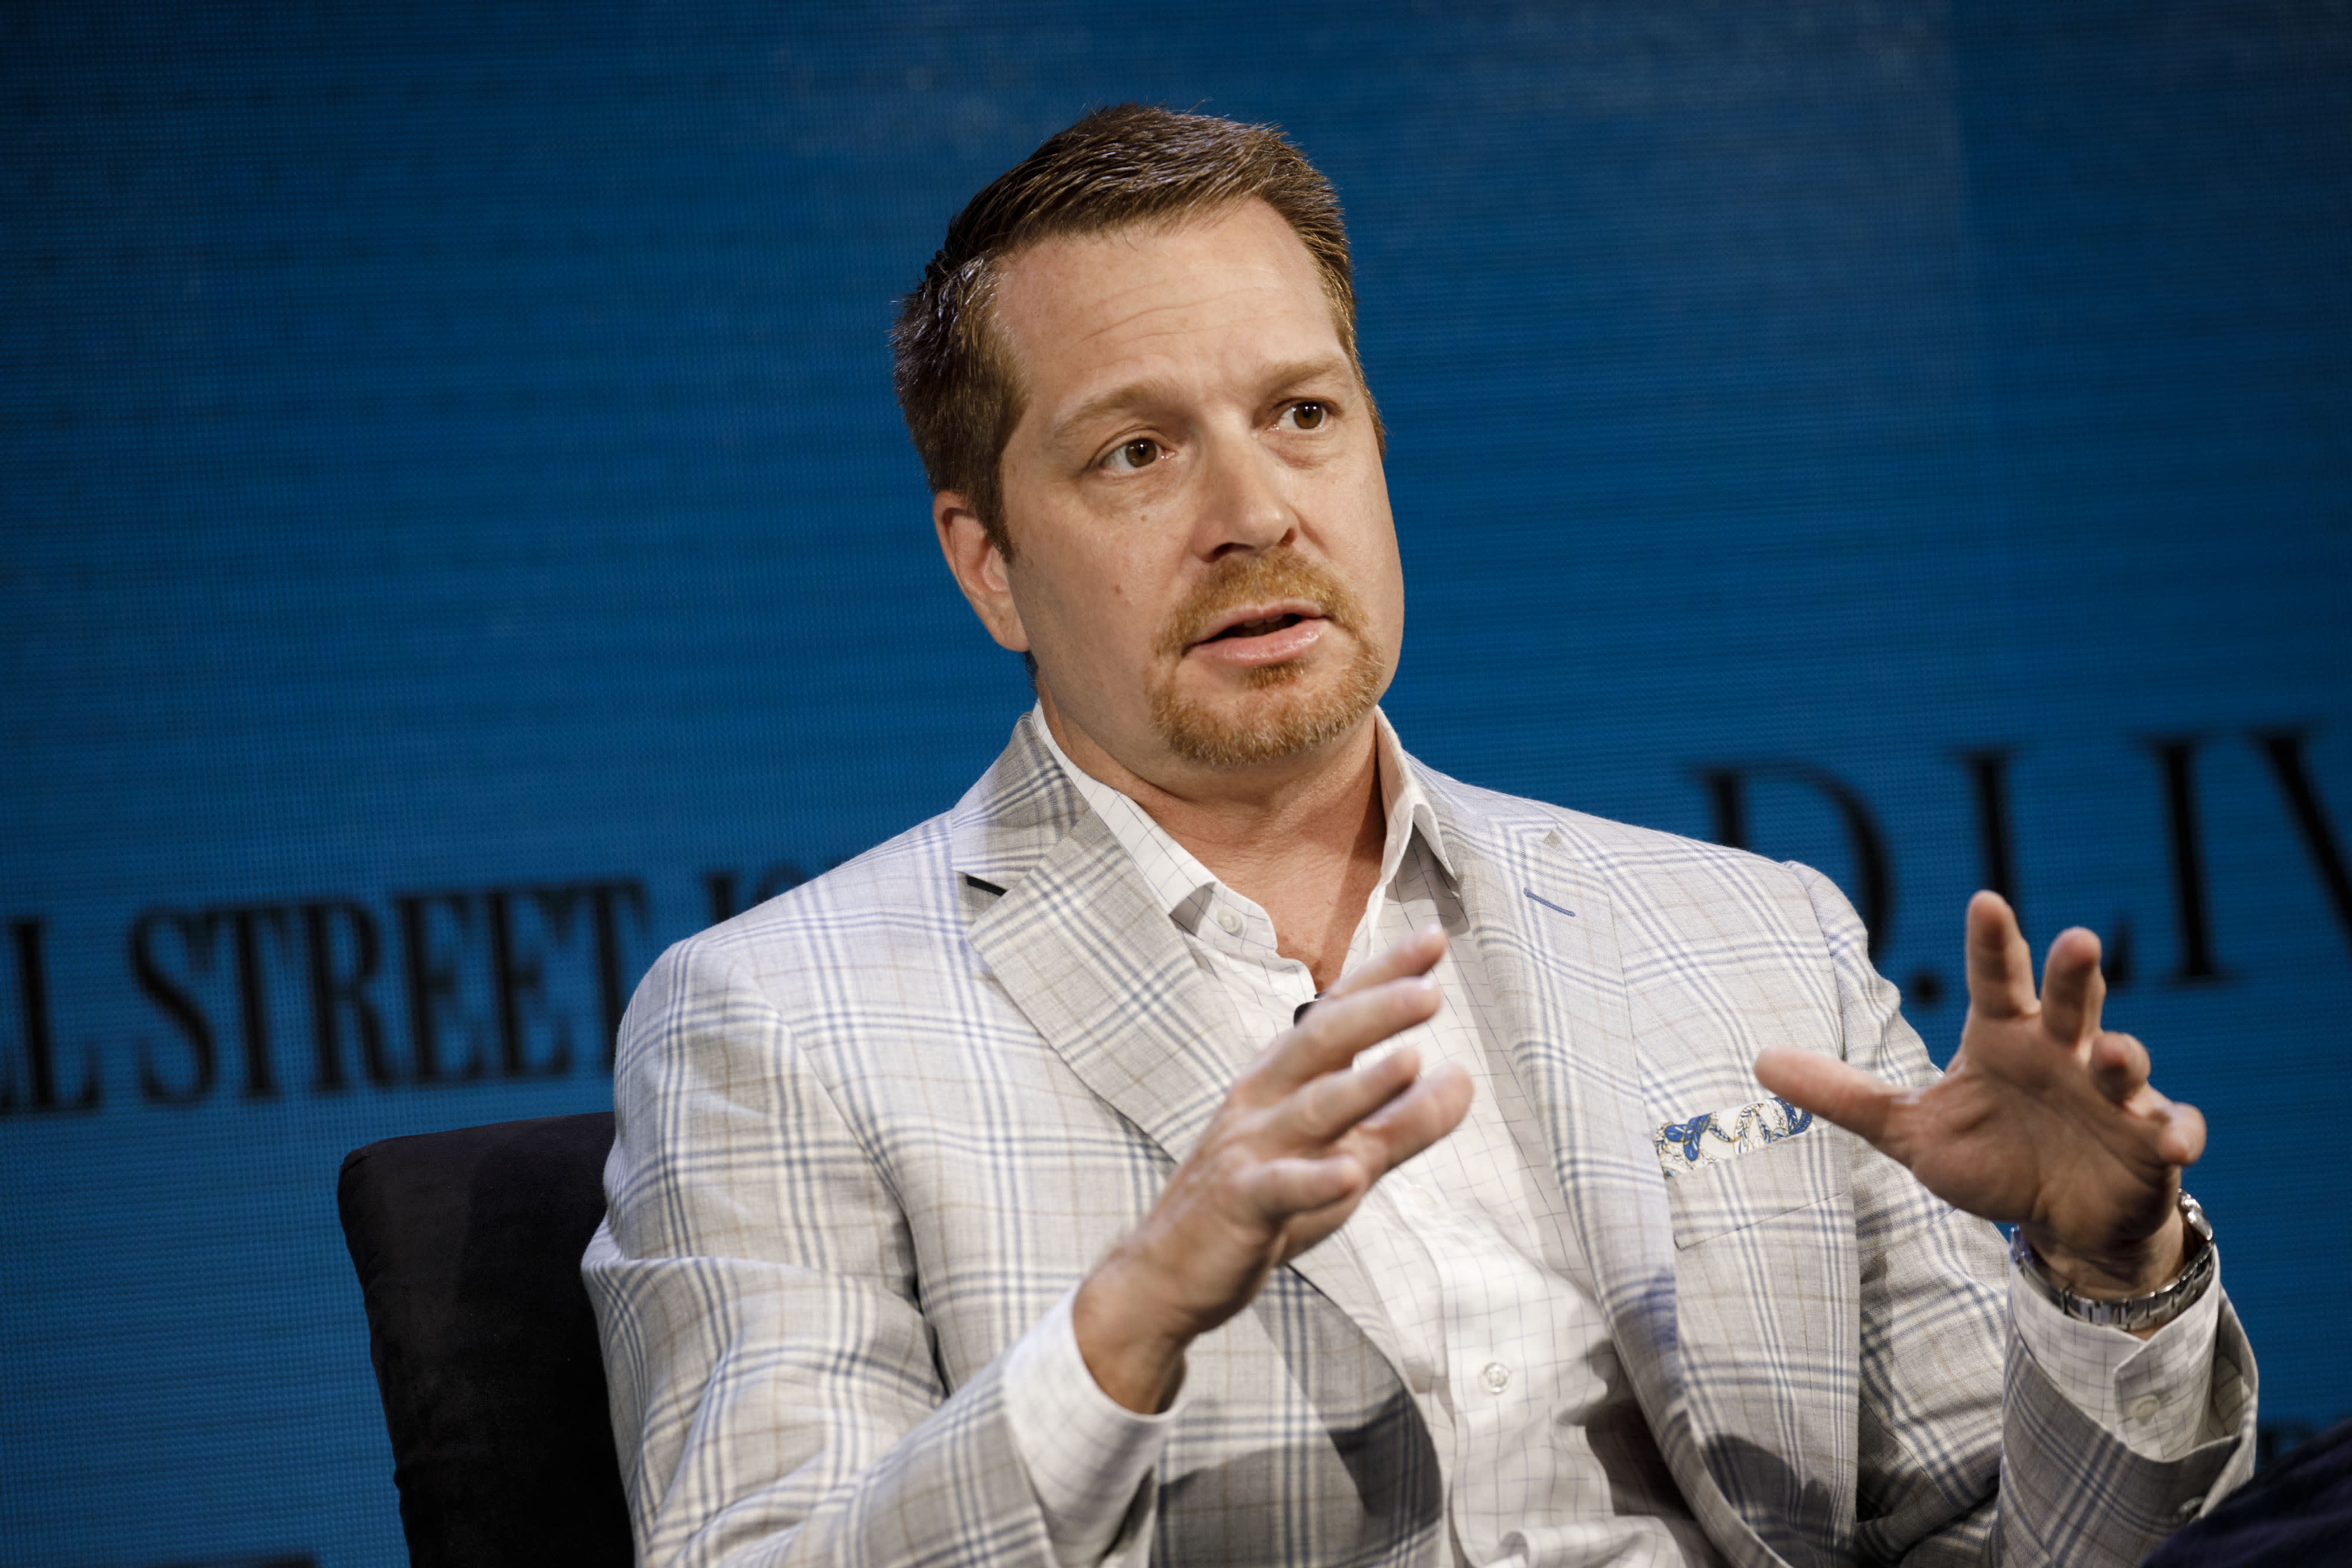 Crowdstrike says an aviation industry hacker had significant high-level access to secrets